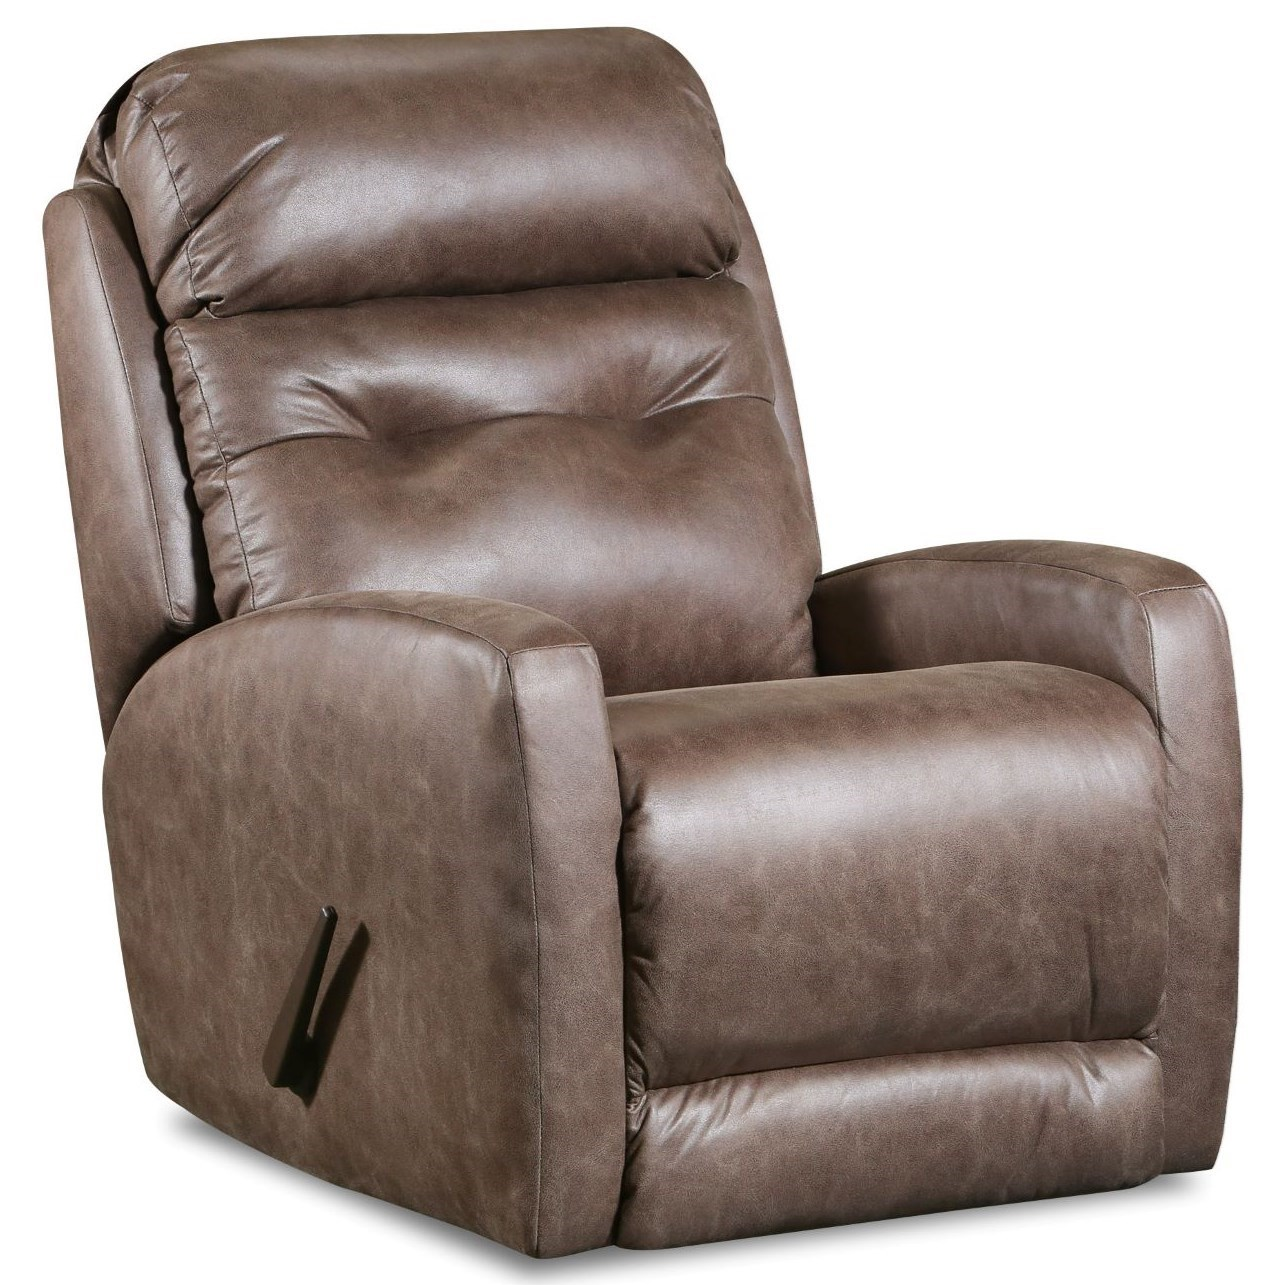 Bank Shot Swivel Rocker Recliner by Southern Motion at Lapeer Furniture & Mattress Center